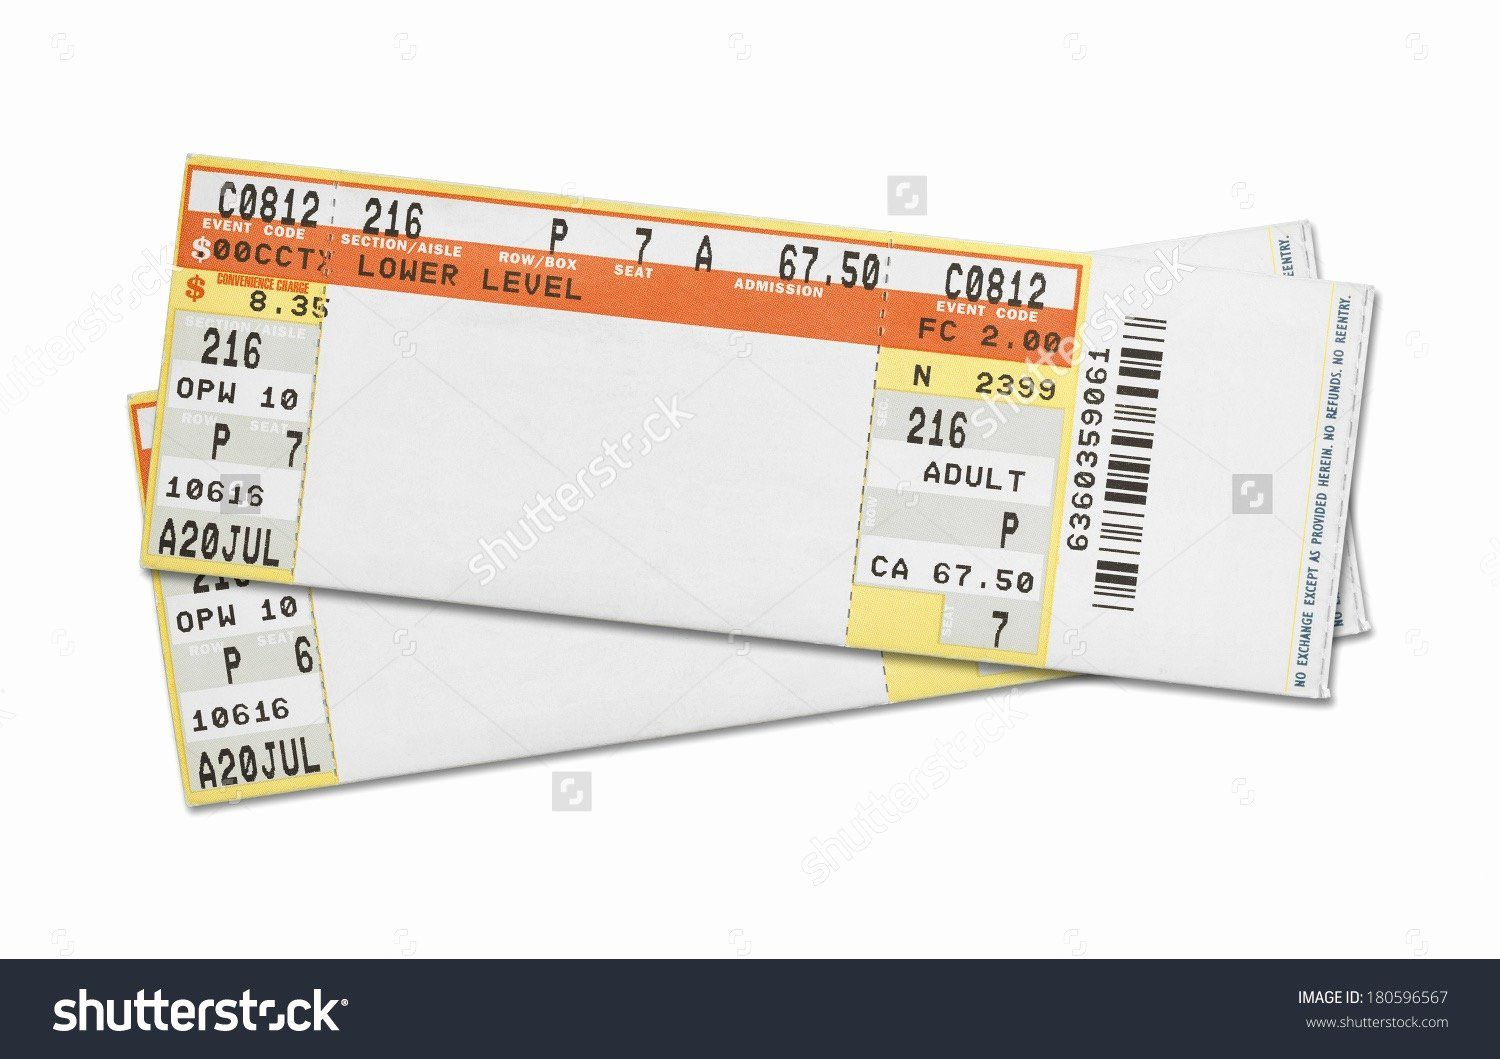 004 Archaicawful Concert Ticket Template Word Inspiration  Free MicrosoftFull